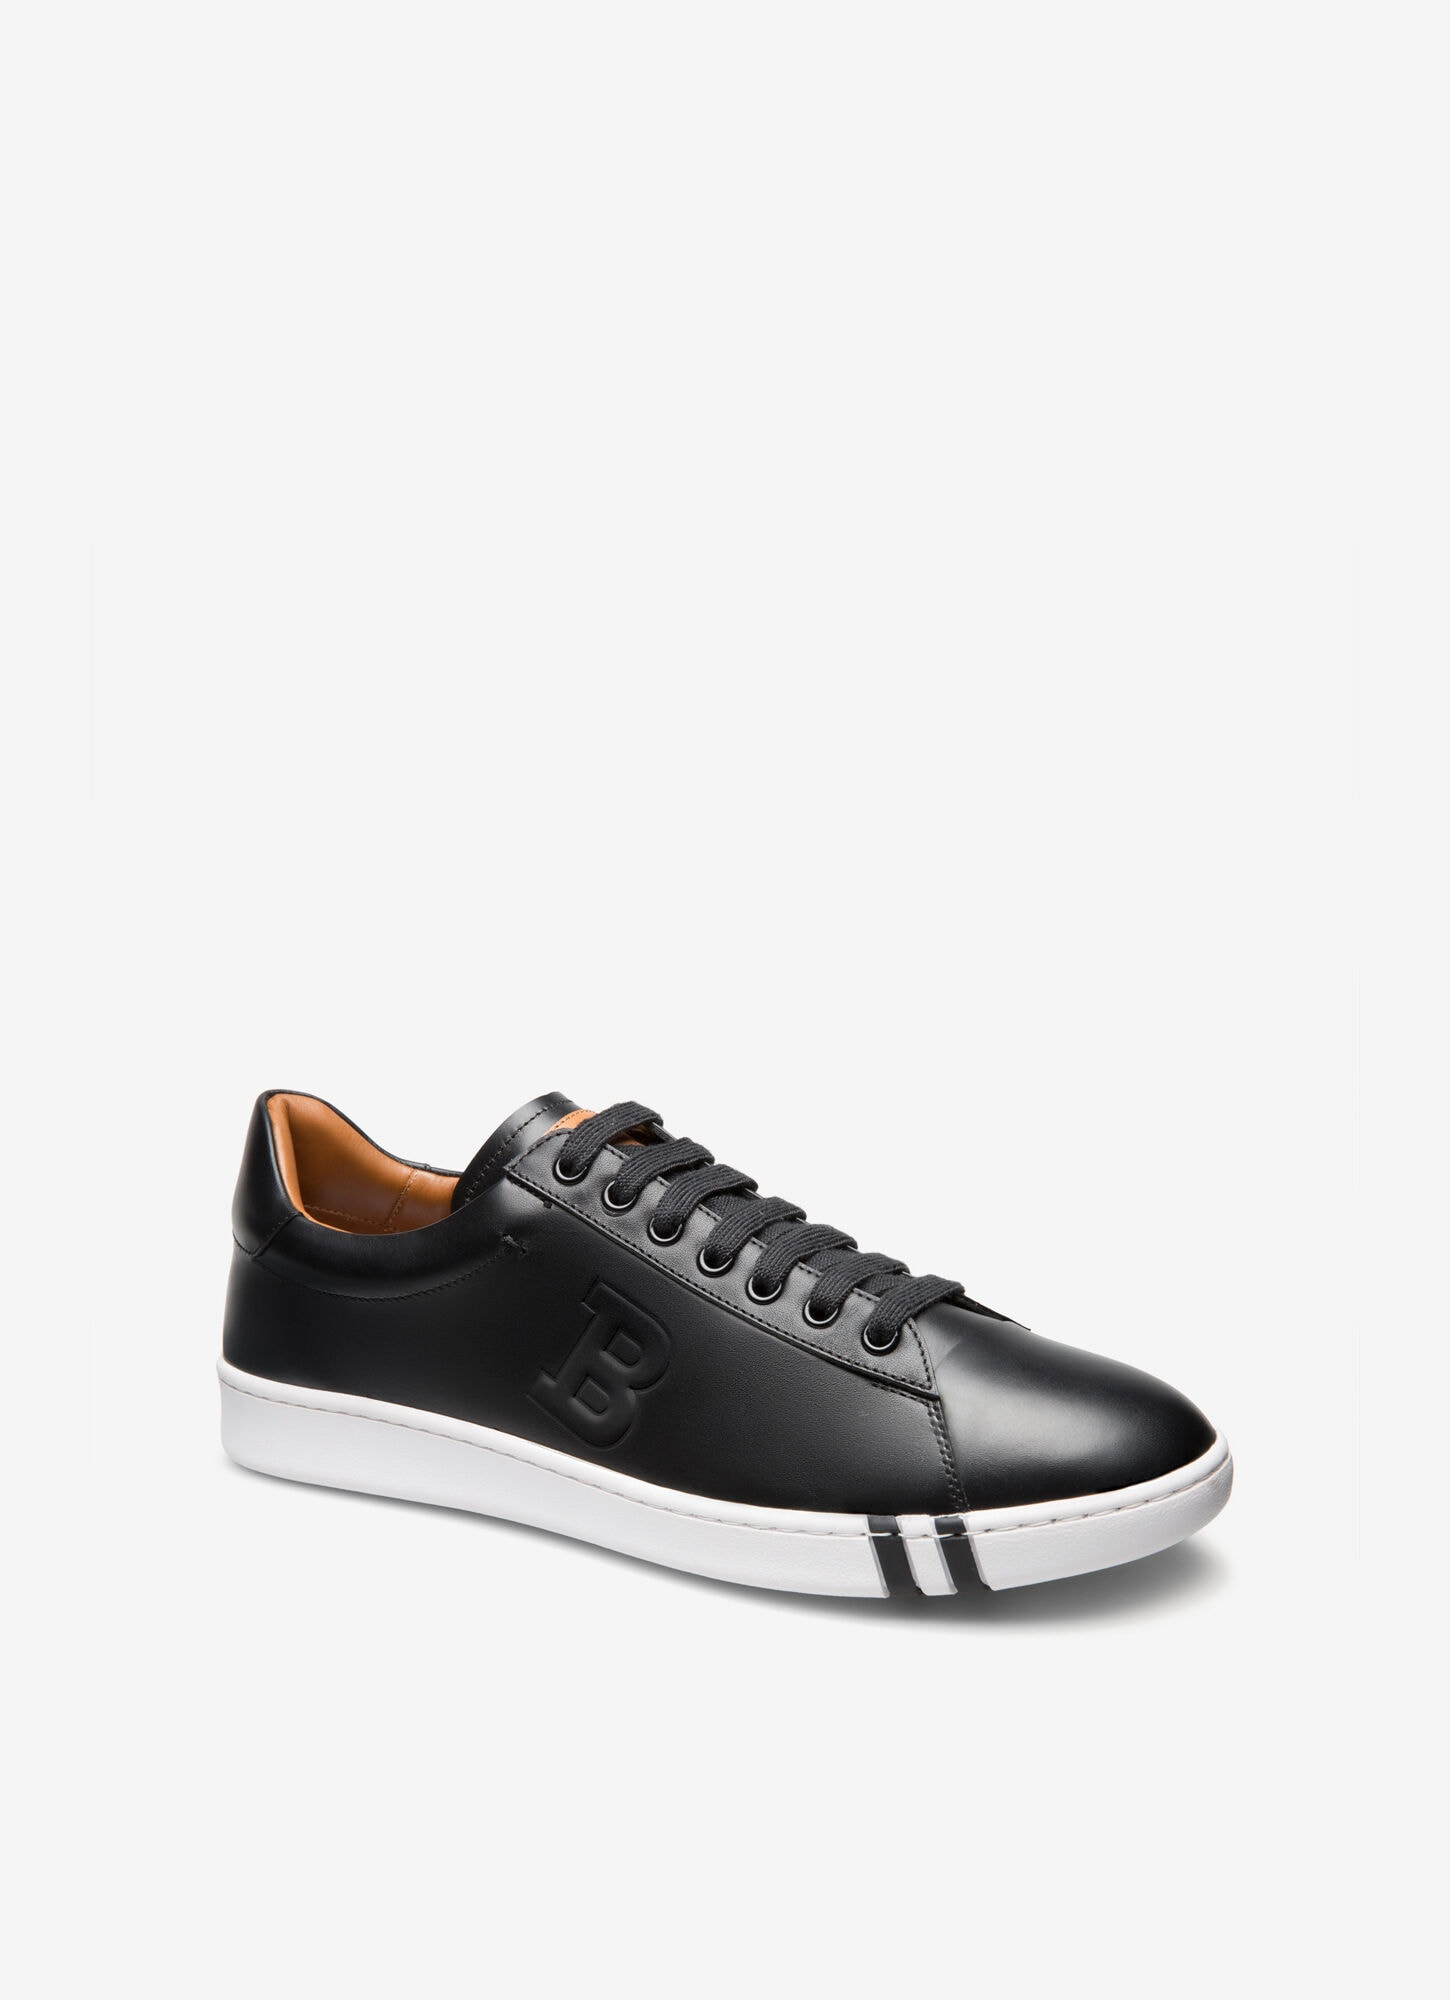 ASHER  Men's sneakers   Bally Shoes